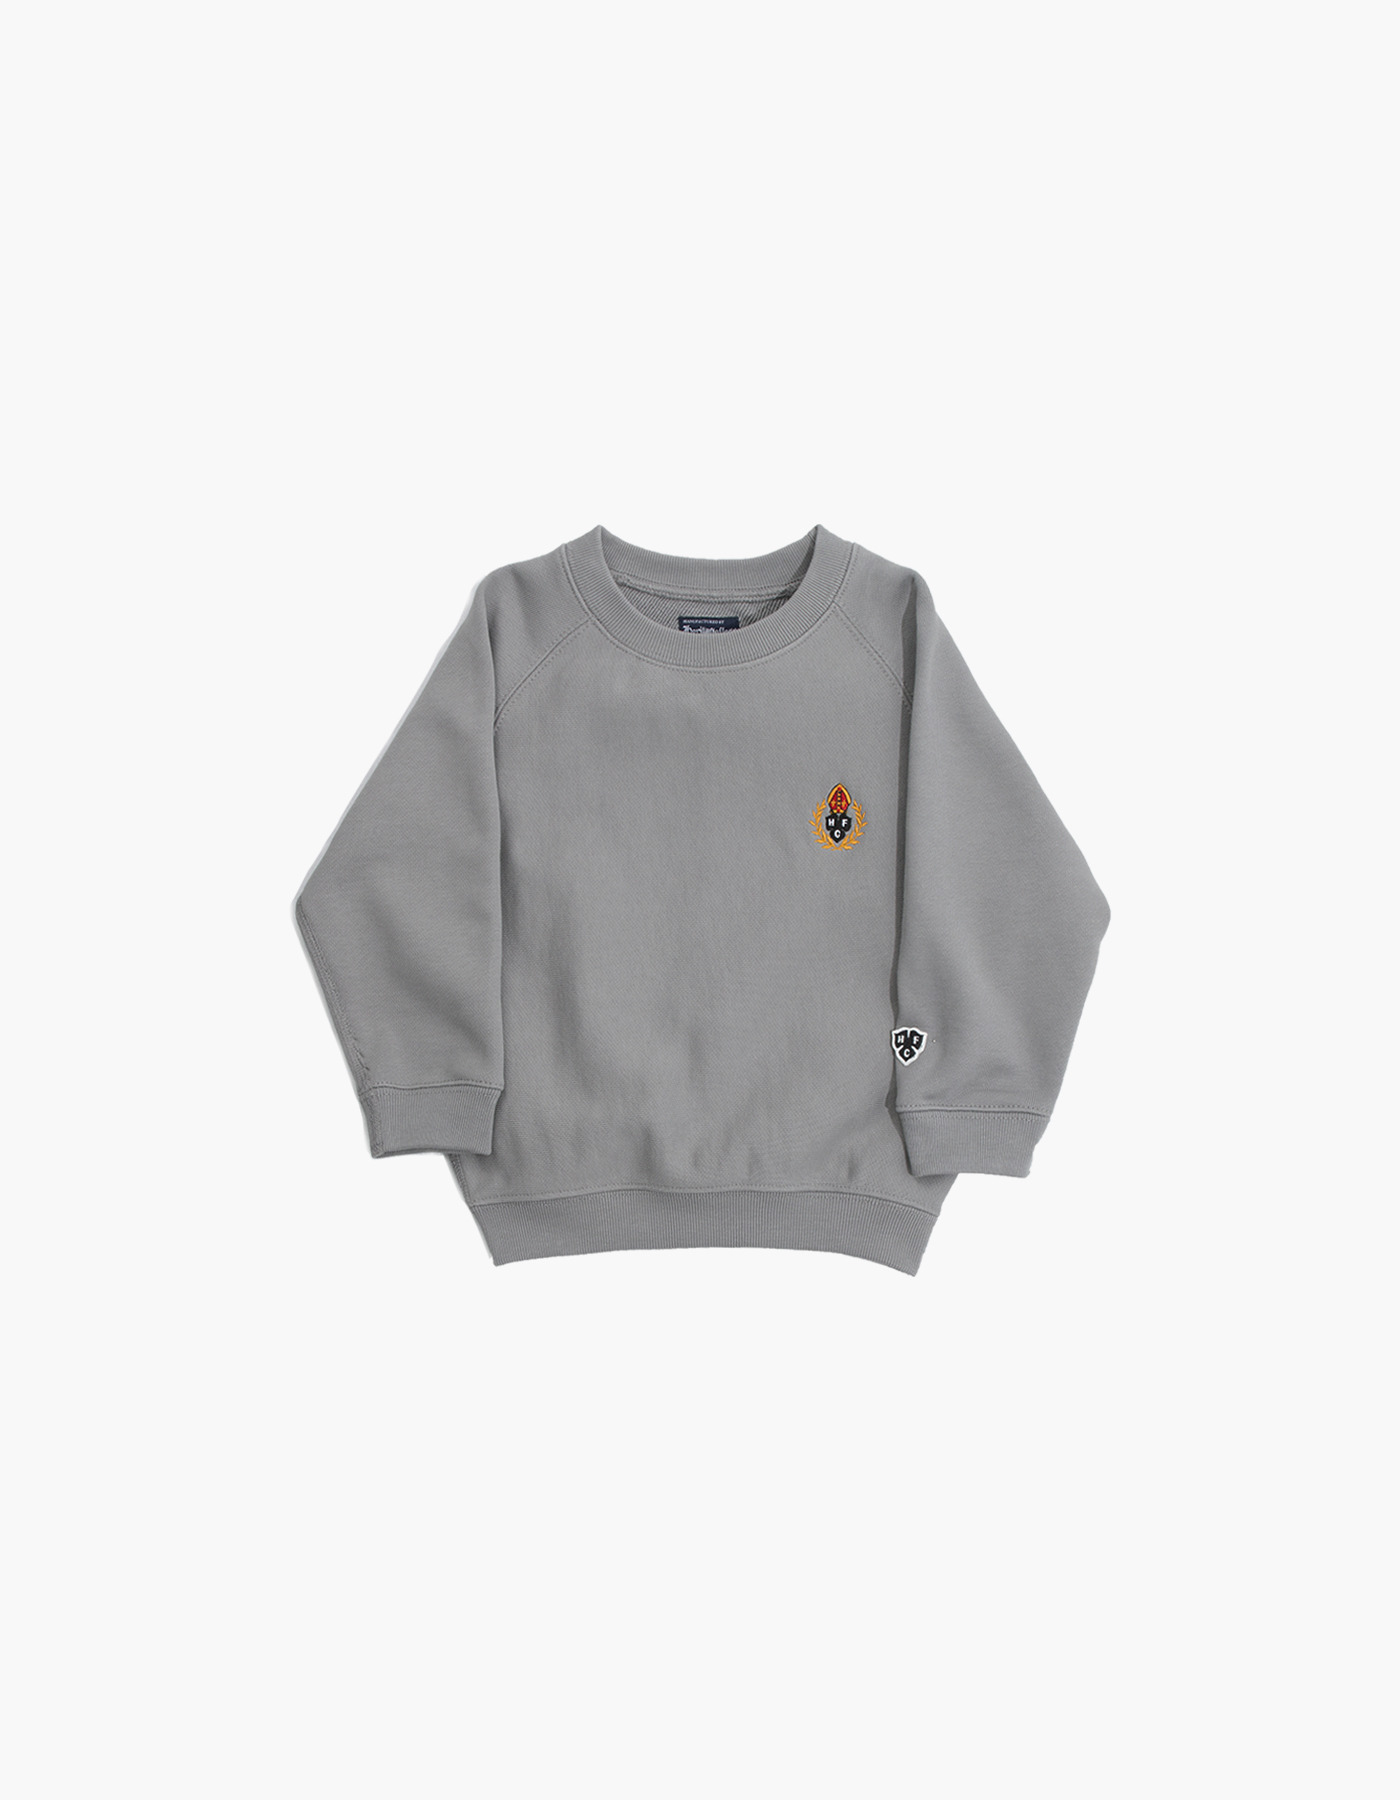 231 KIDS HFC CREWNECK / GREY